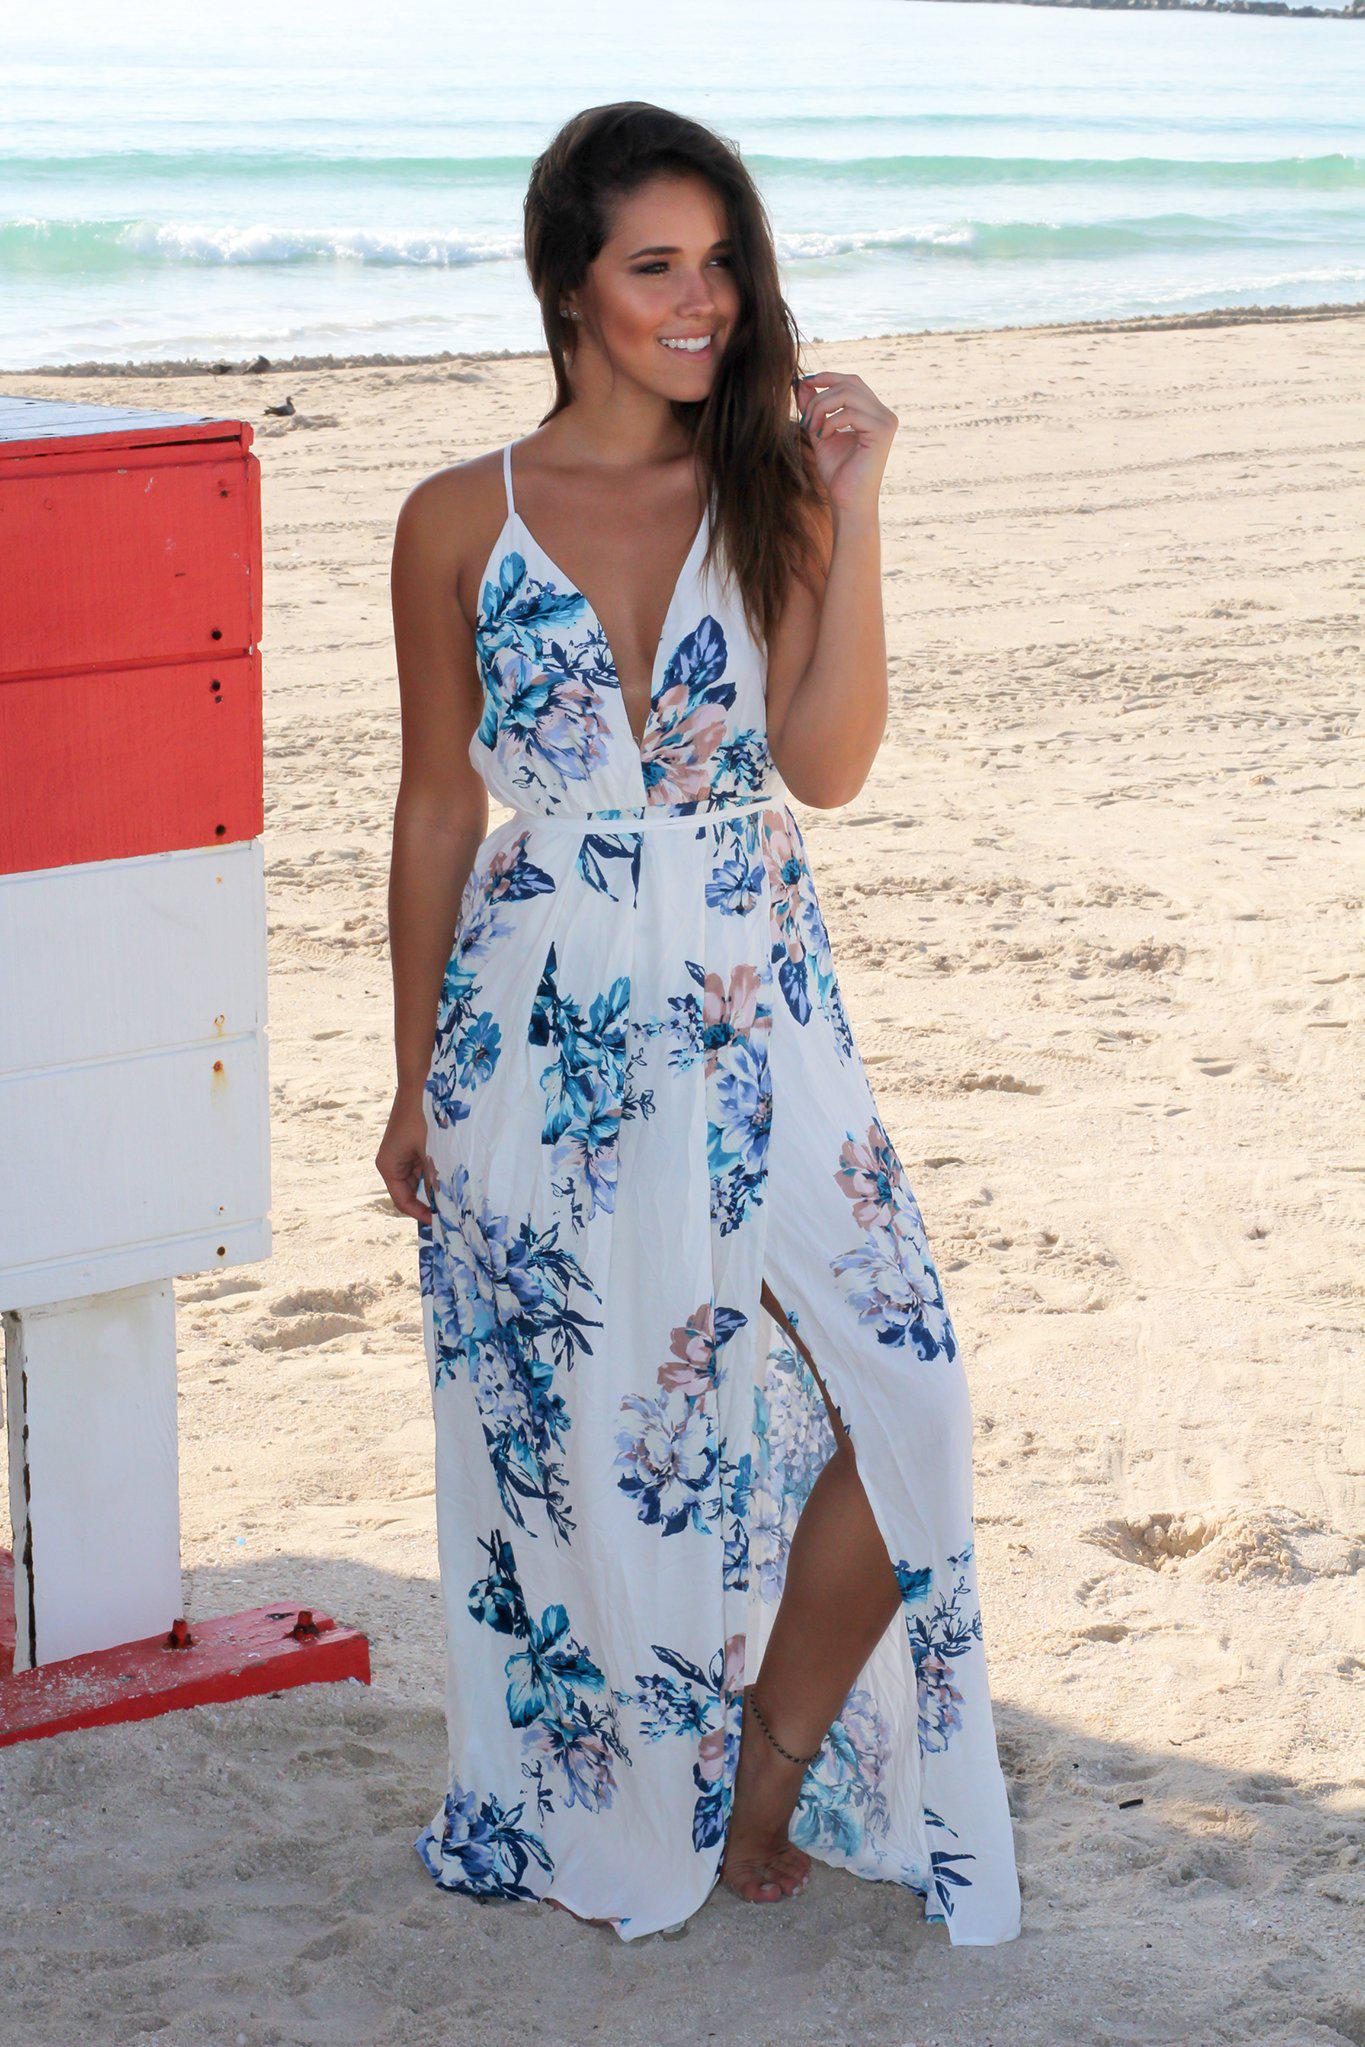 Ivory and Blue Floral Maxi Dress with Criss Cross Back